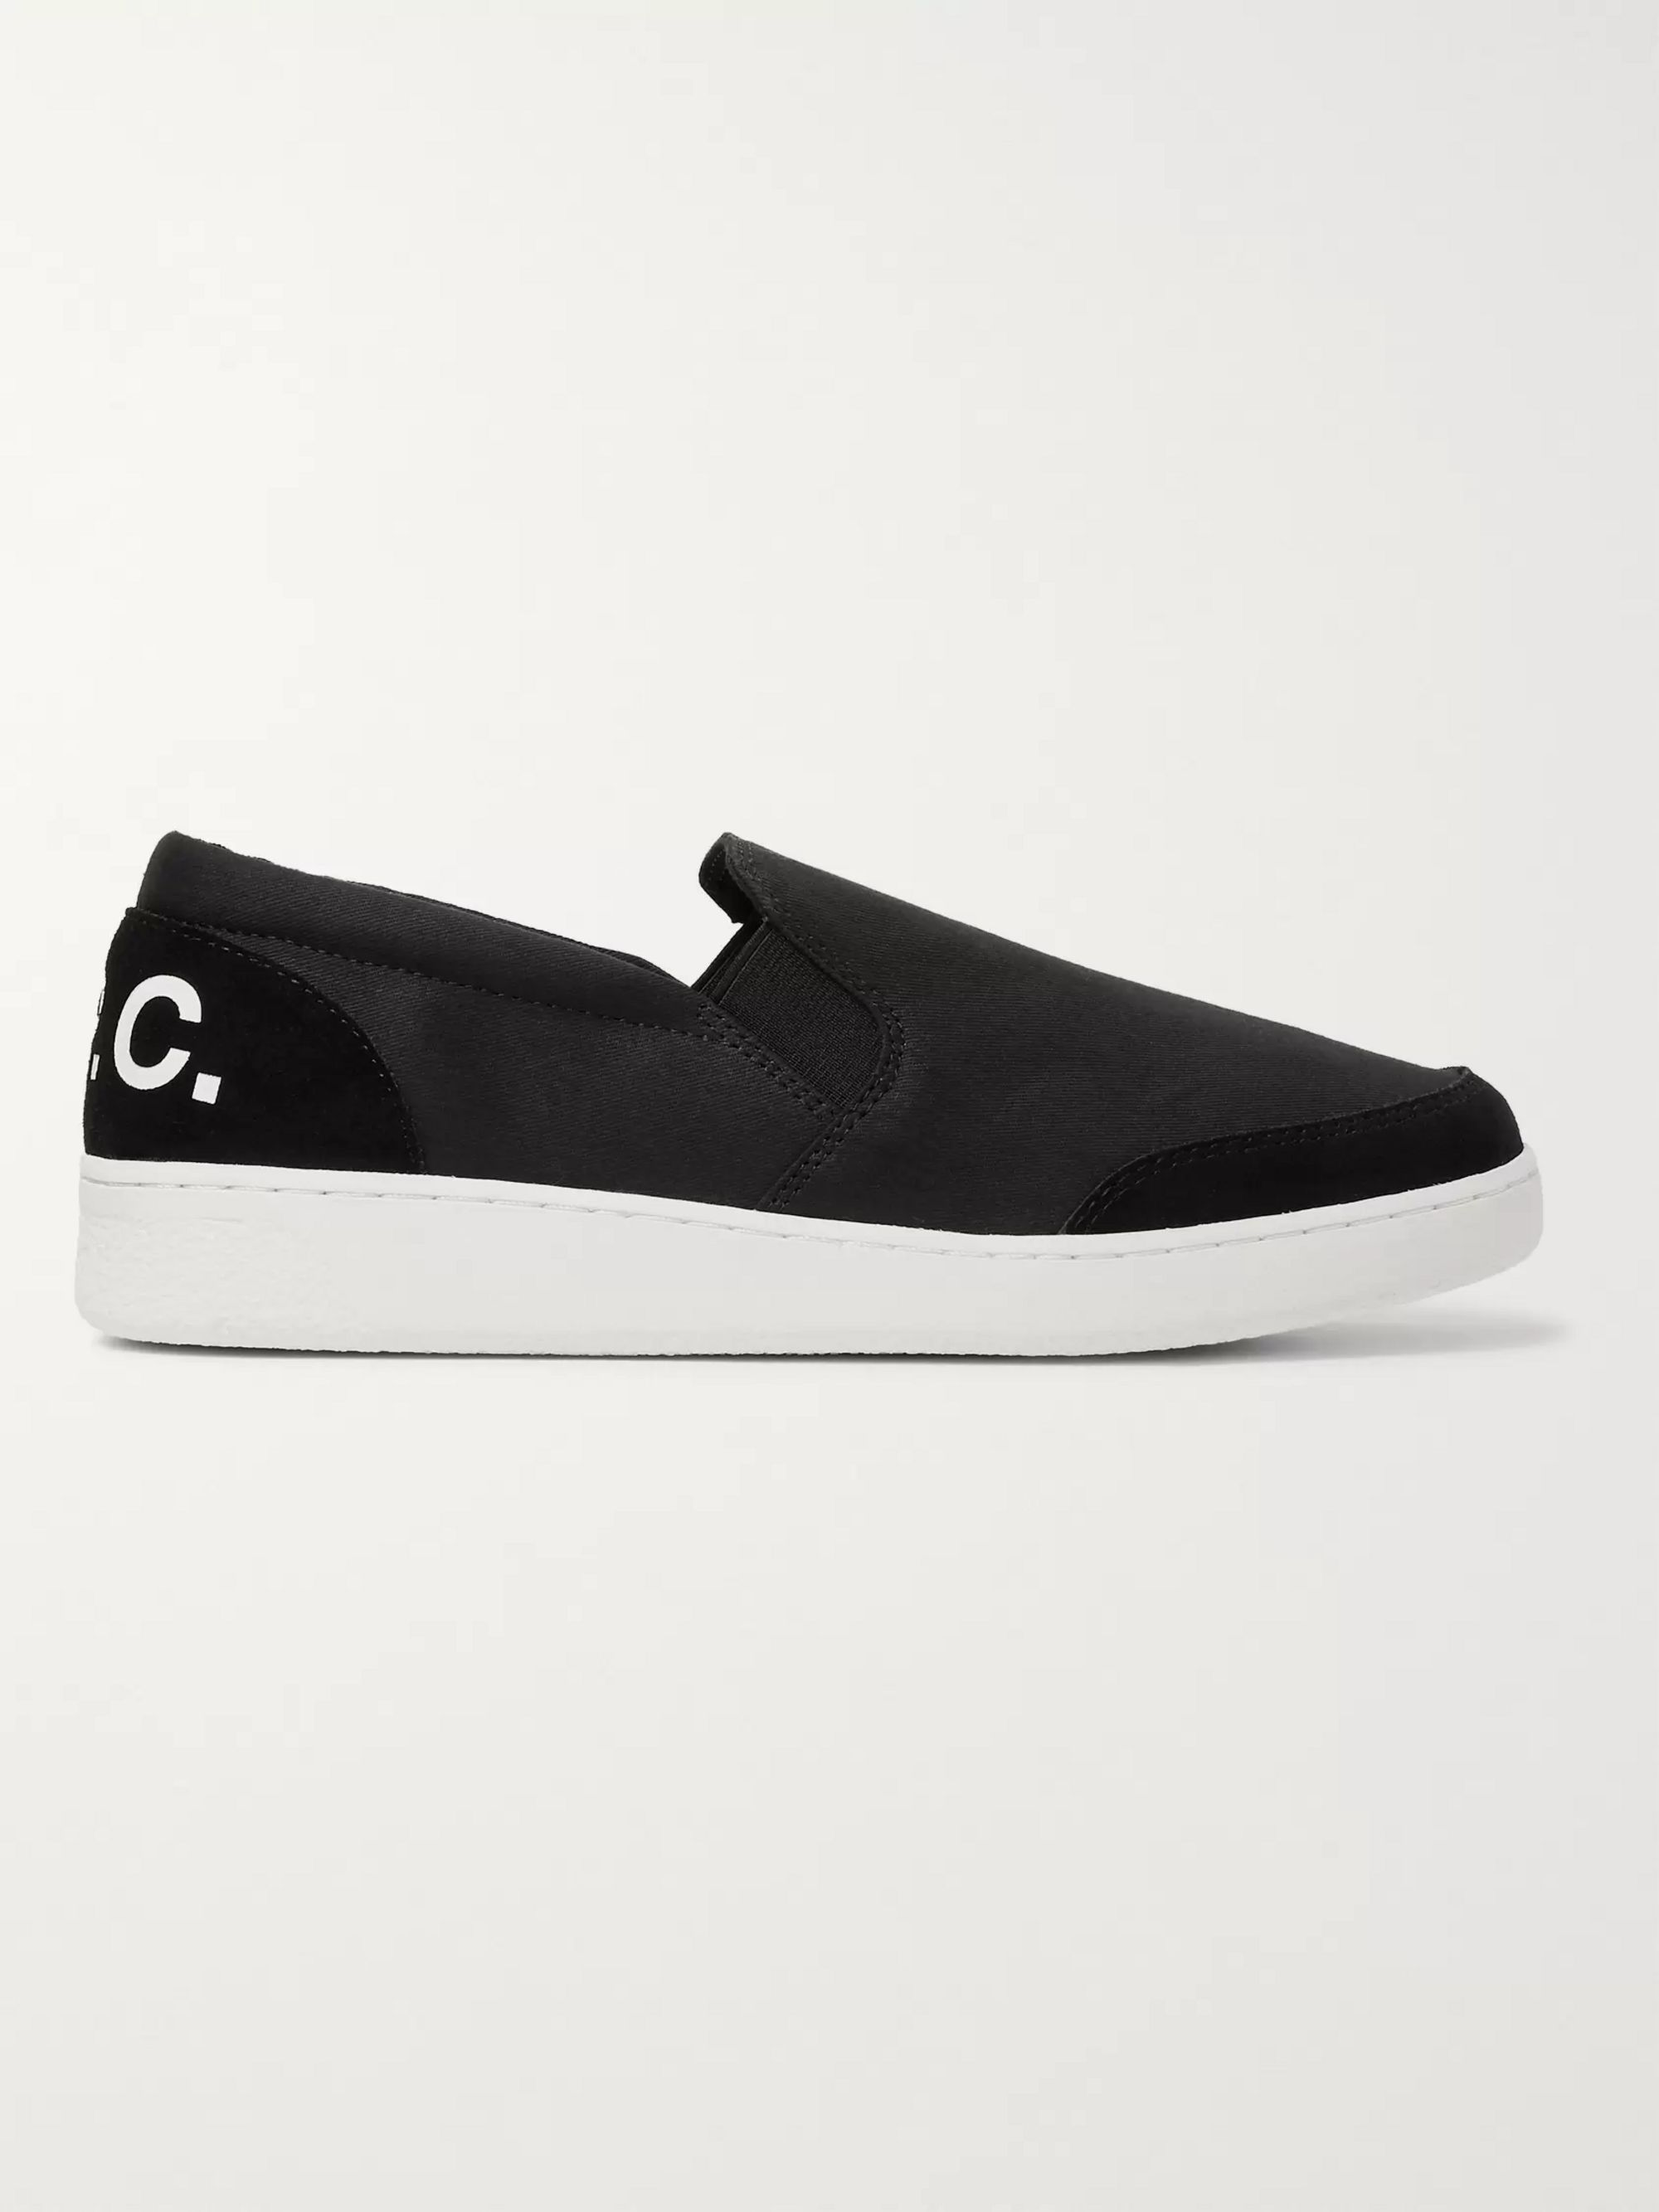 A.P.C. Cole Logo-Print Suede-Trimmed Canvas Slip-On Sneakers